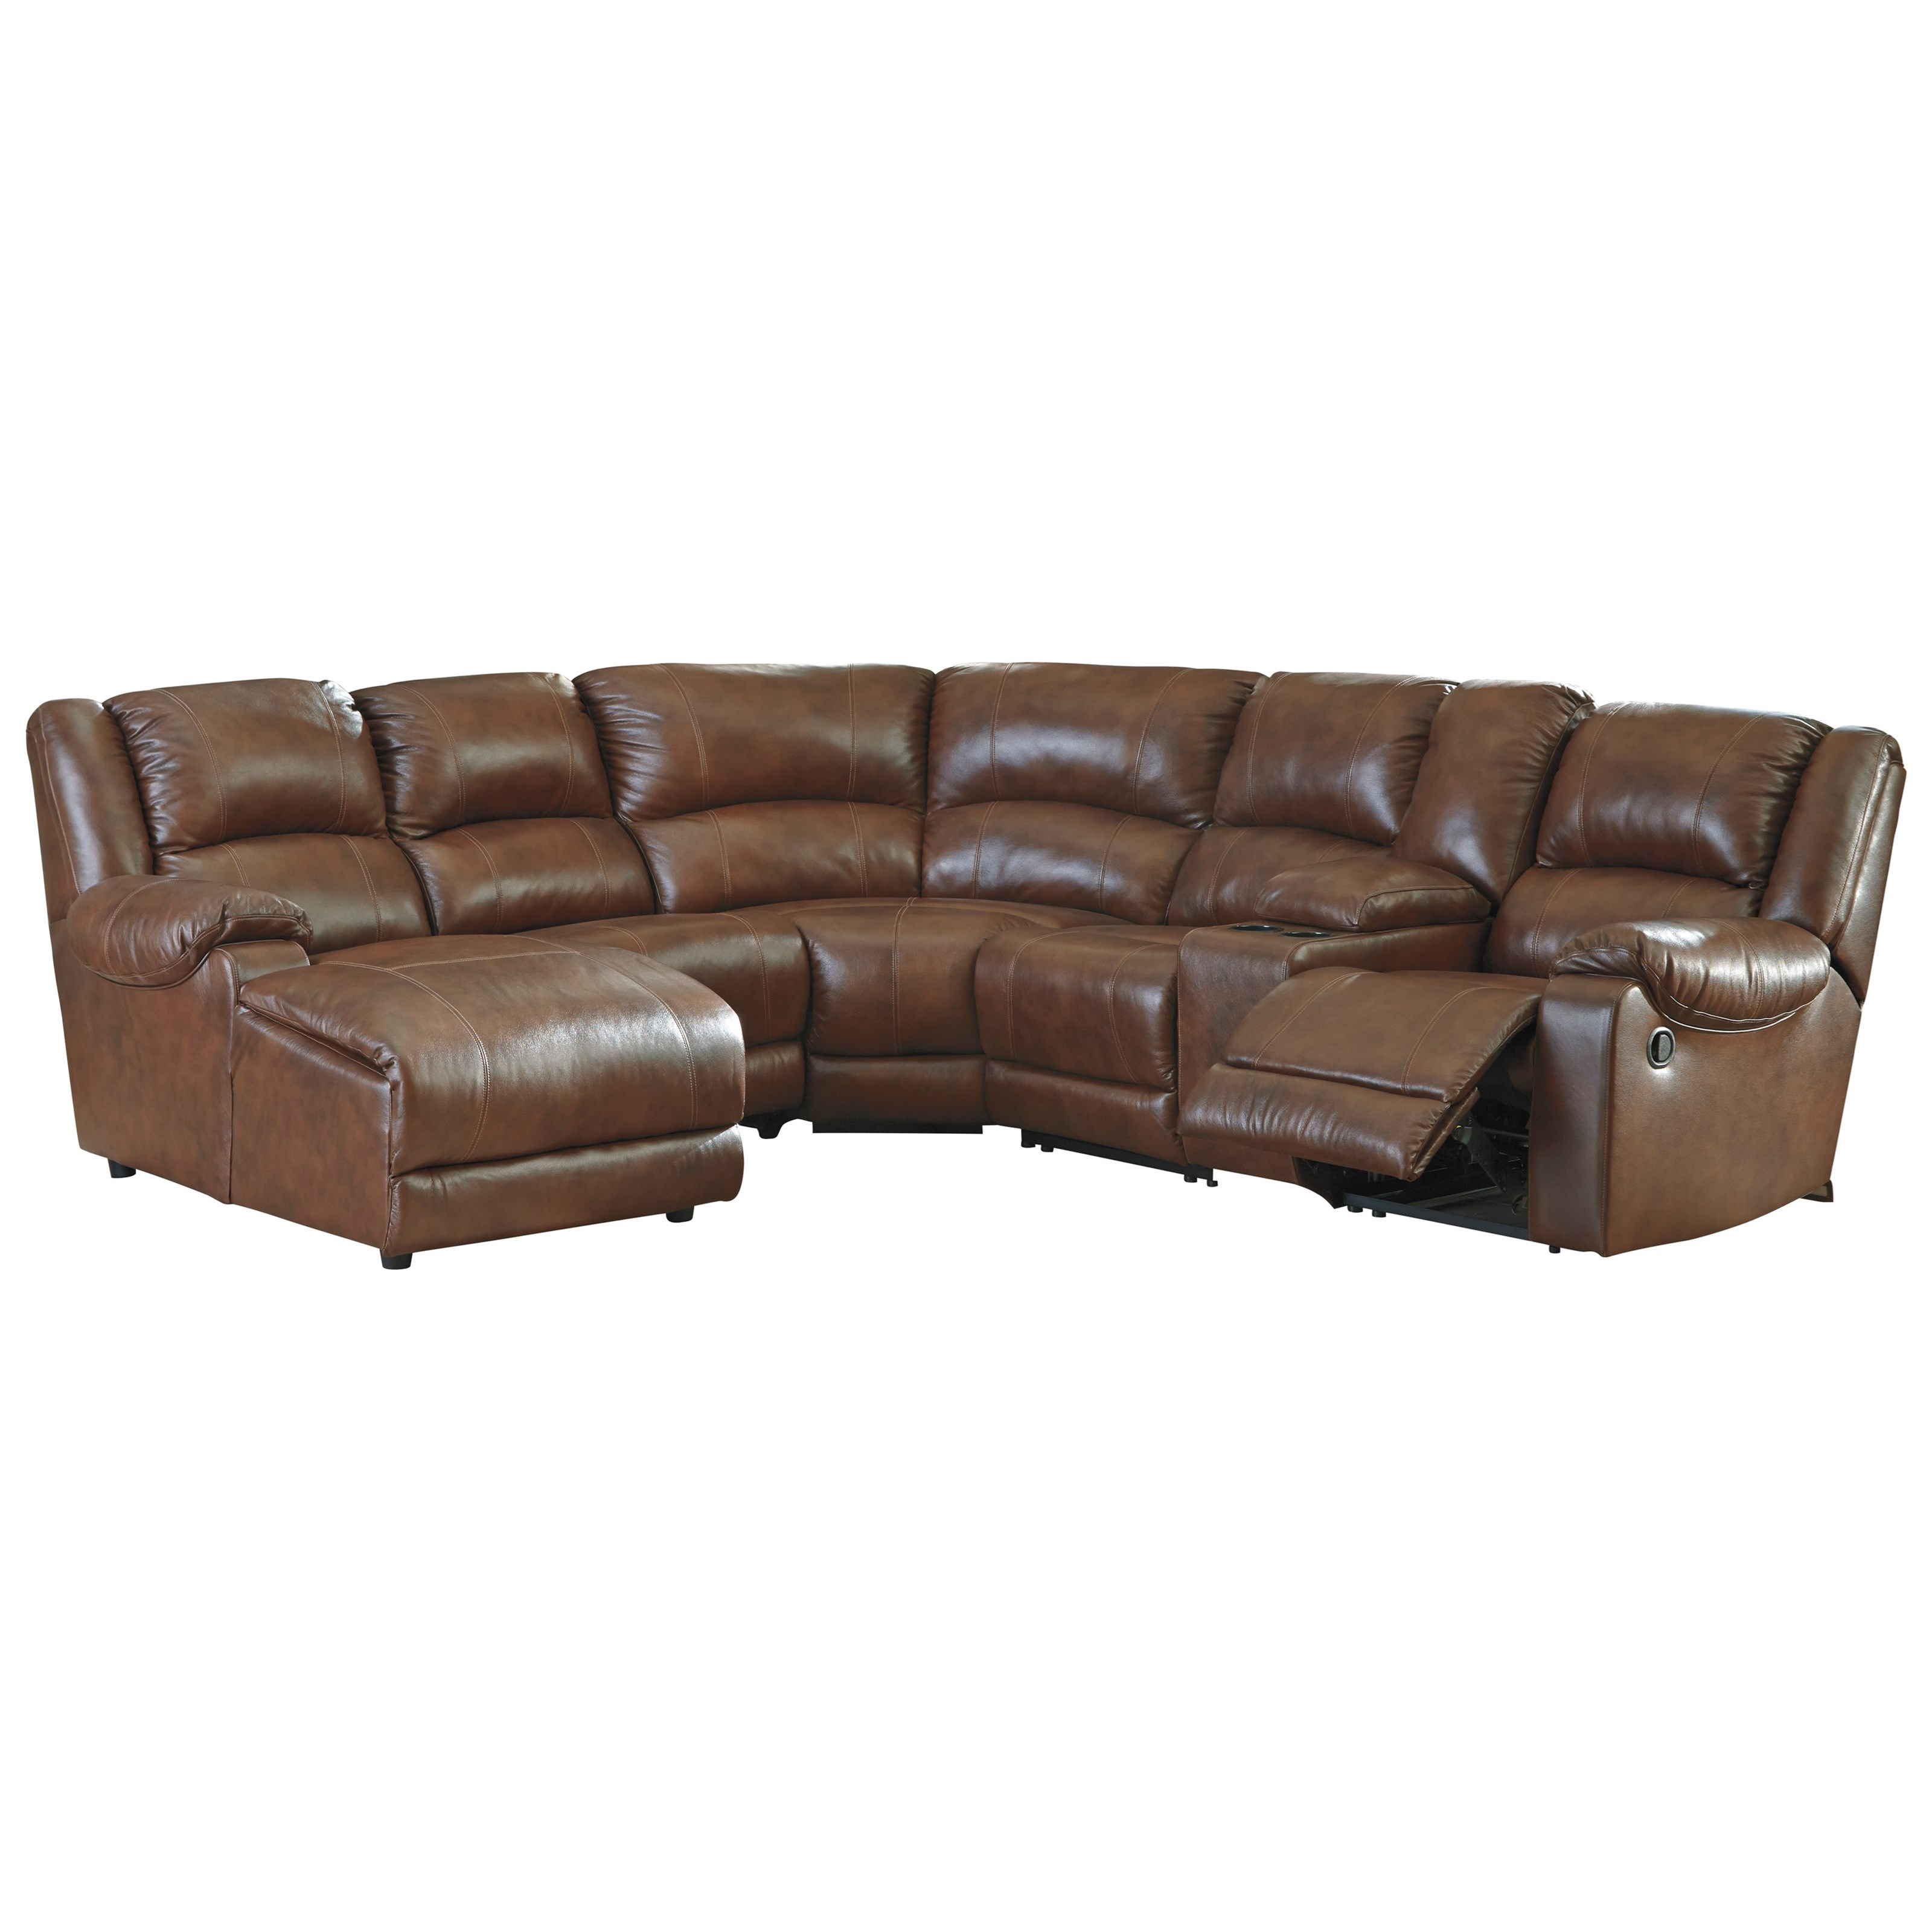 lounge chaise accent with chairs longue the interior furniture current regard best reclining indoor to recliner lounges